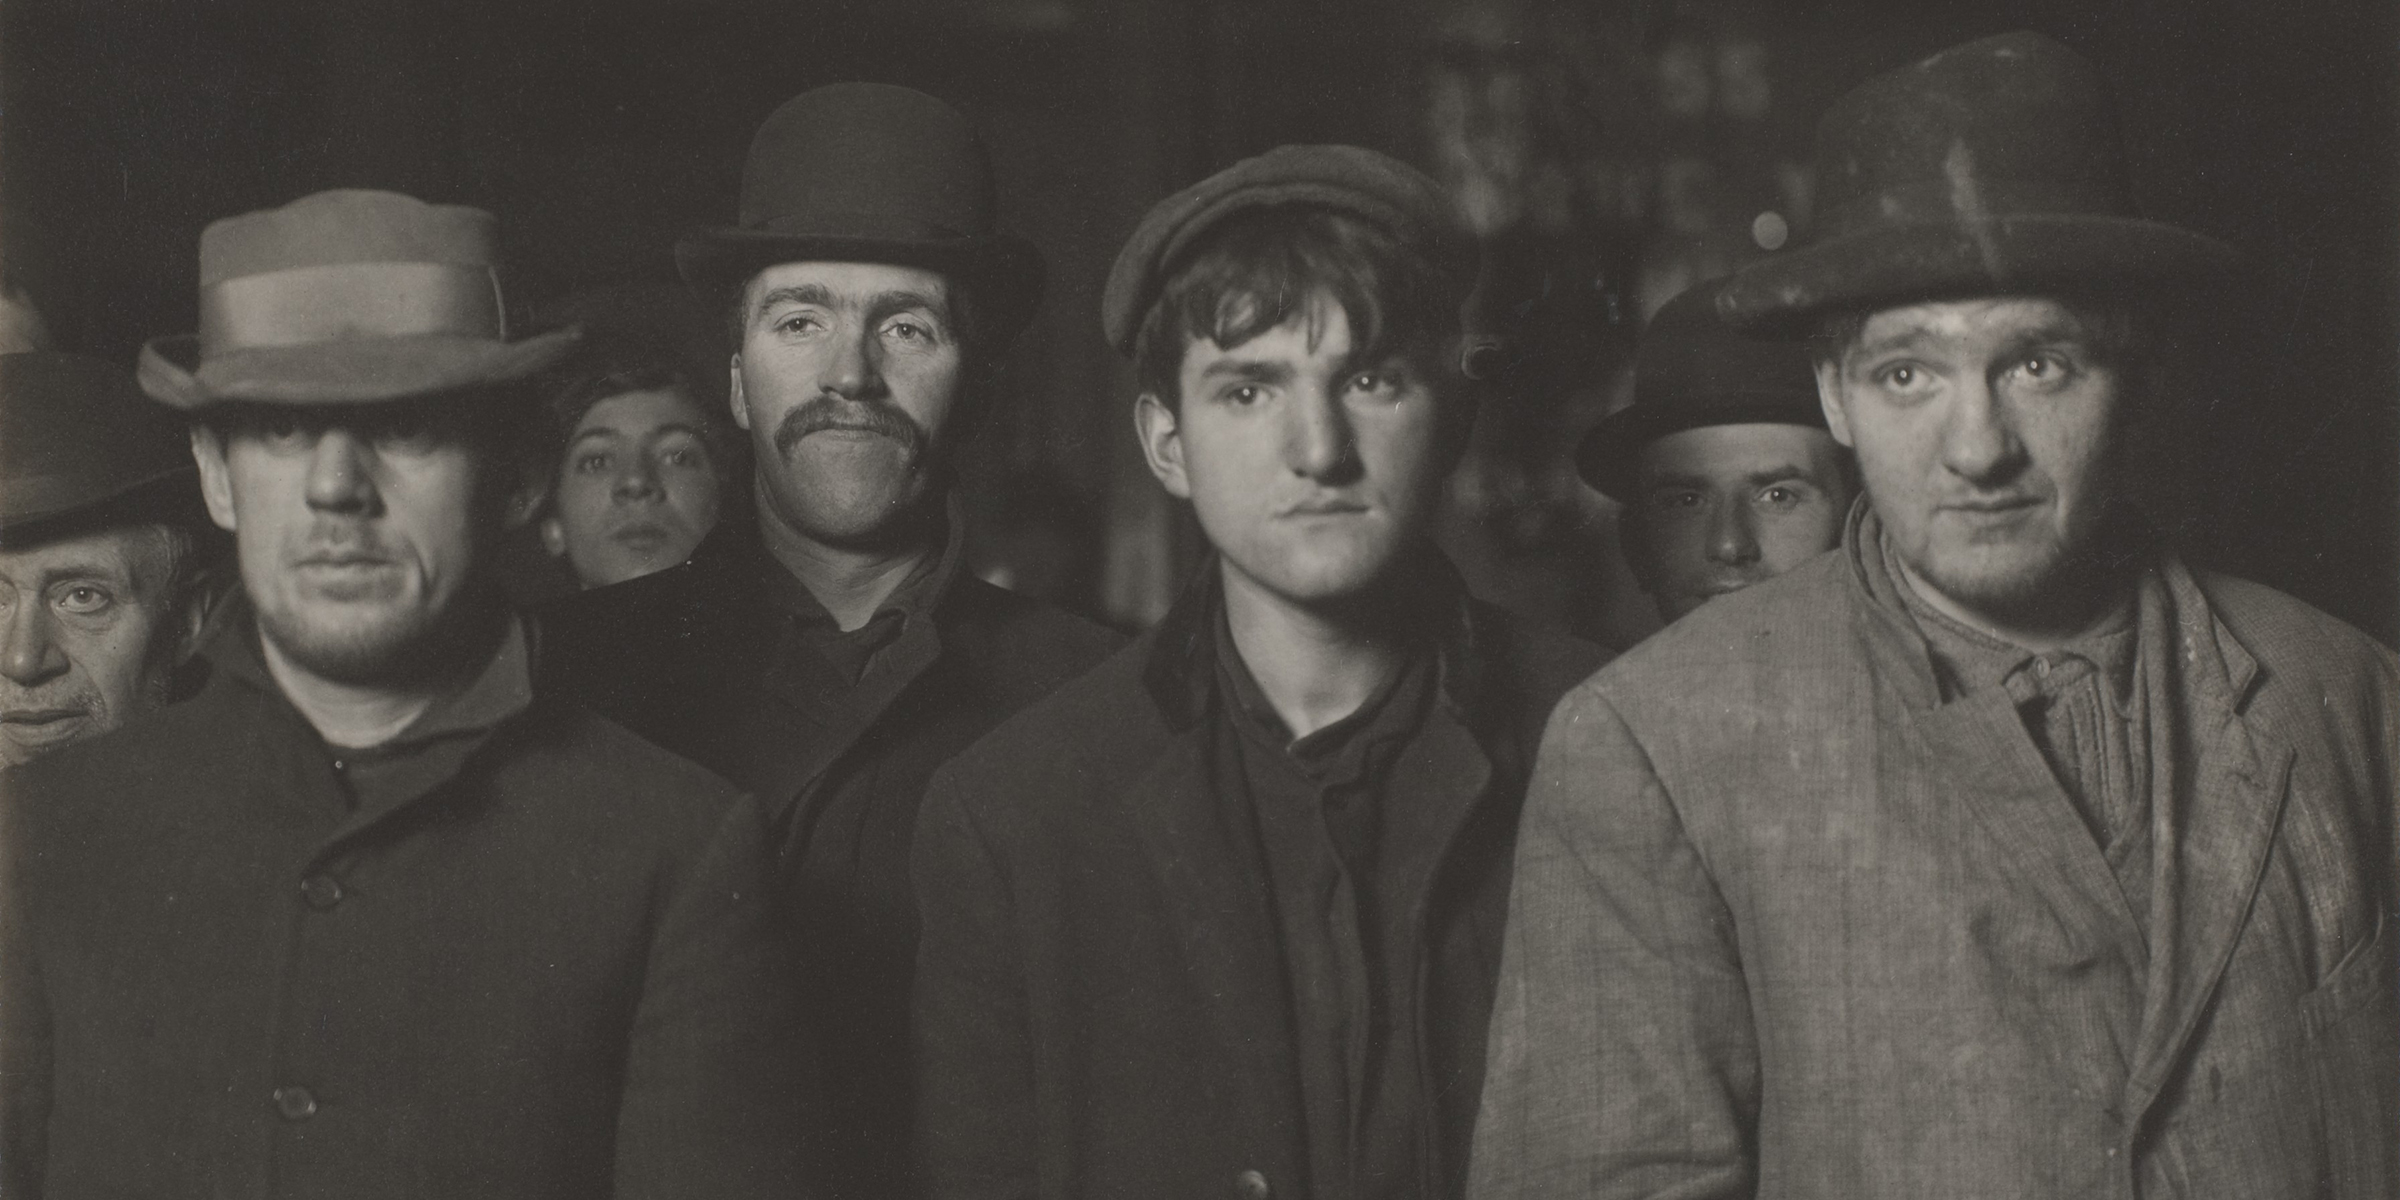 Midnight at the Bowery Mission Bread Line (detail), by Lewis Hine, c. 1906. The Metropolitan Museum of Art, gift of John C. Waddell, 1998.